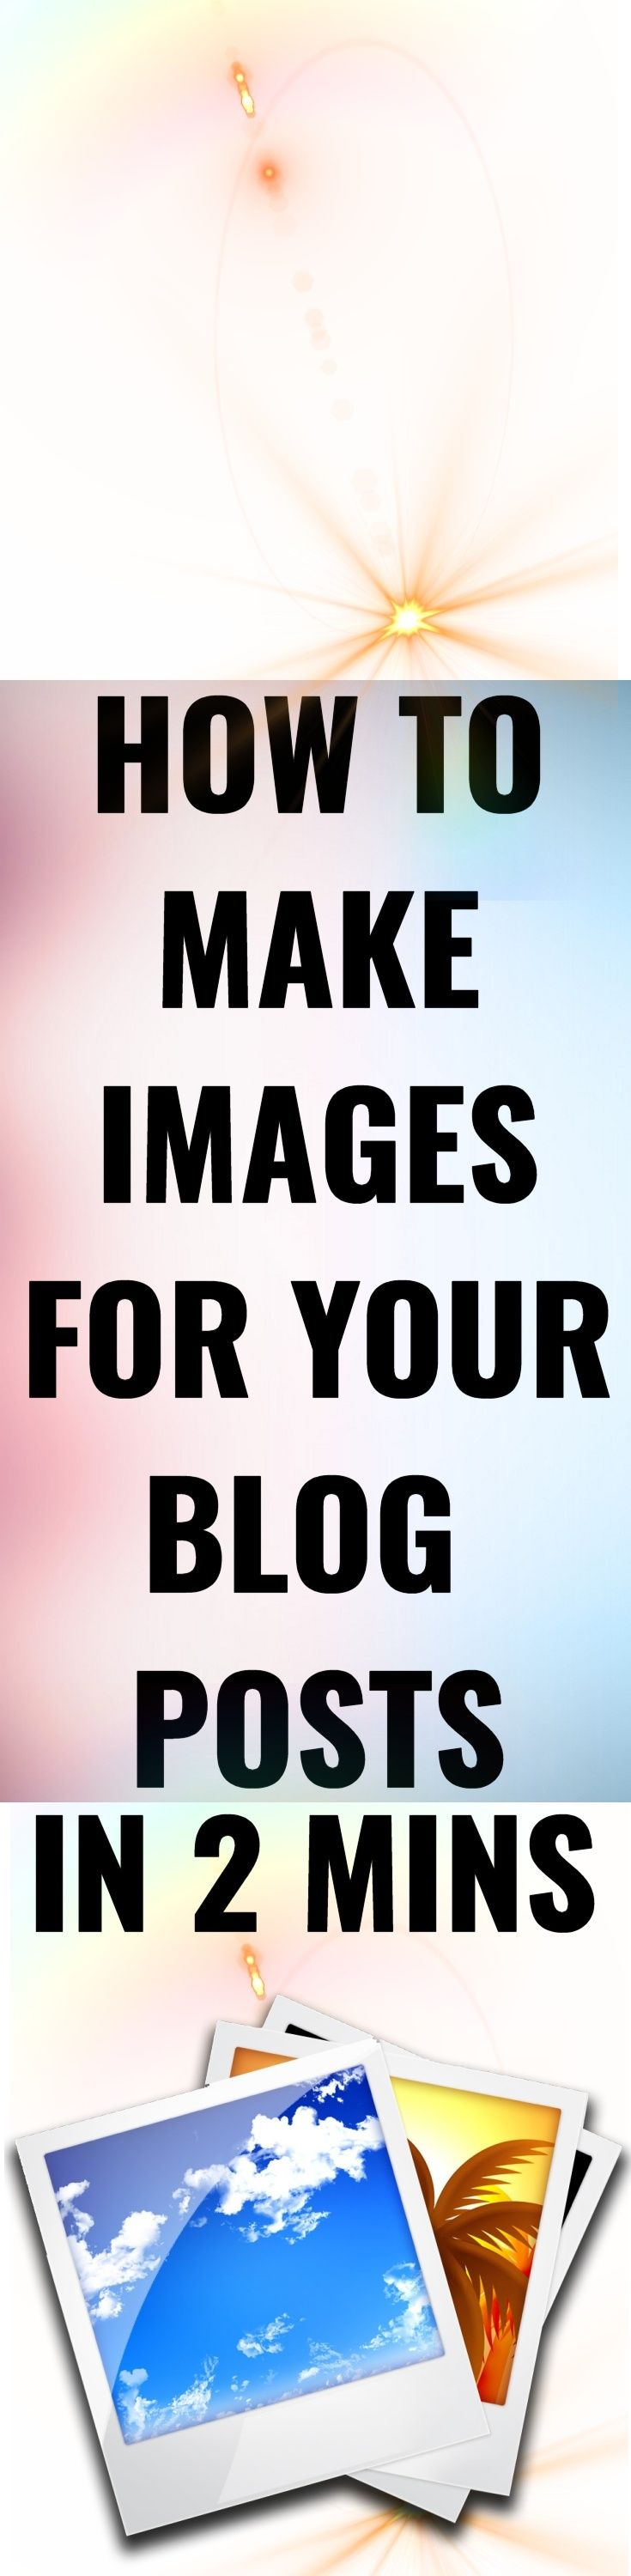 How to Make Images for Your Blog Posts in 2 Mins